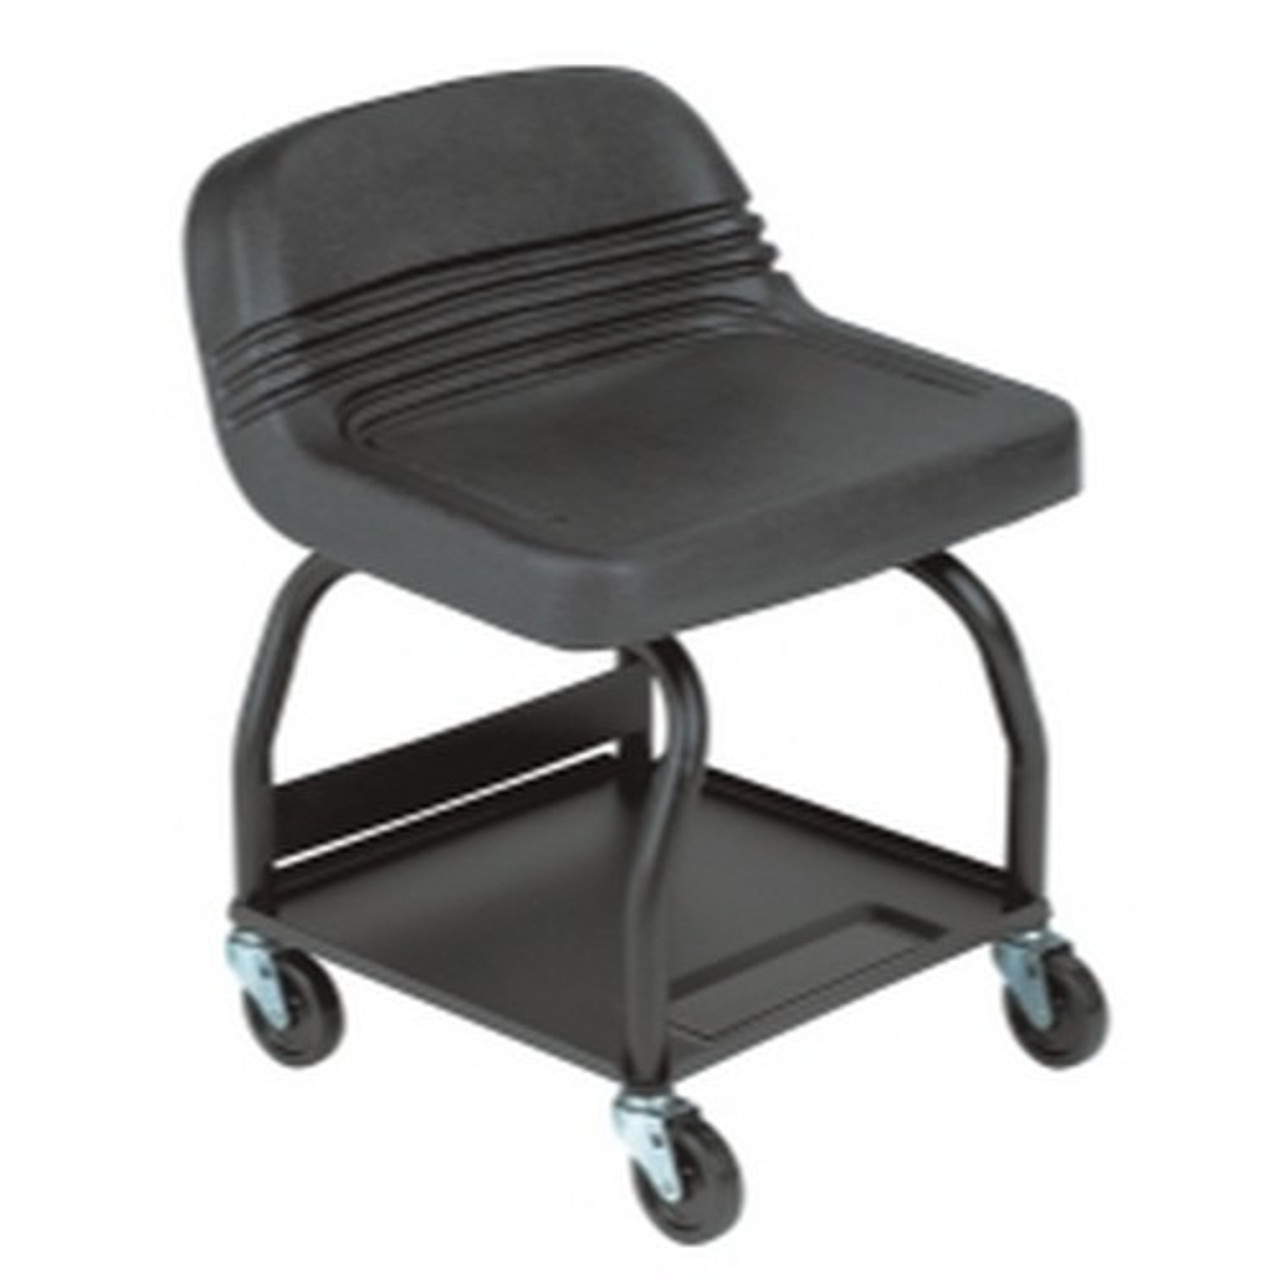 Whiteside Manufacturing HRAS Adjustable Height Mechanic/'s Seat